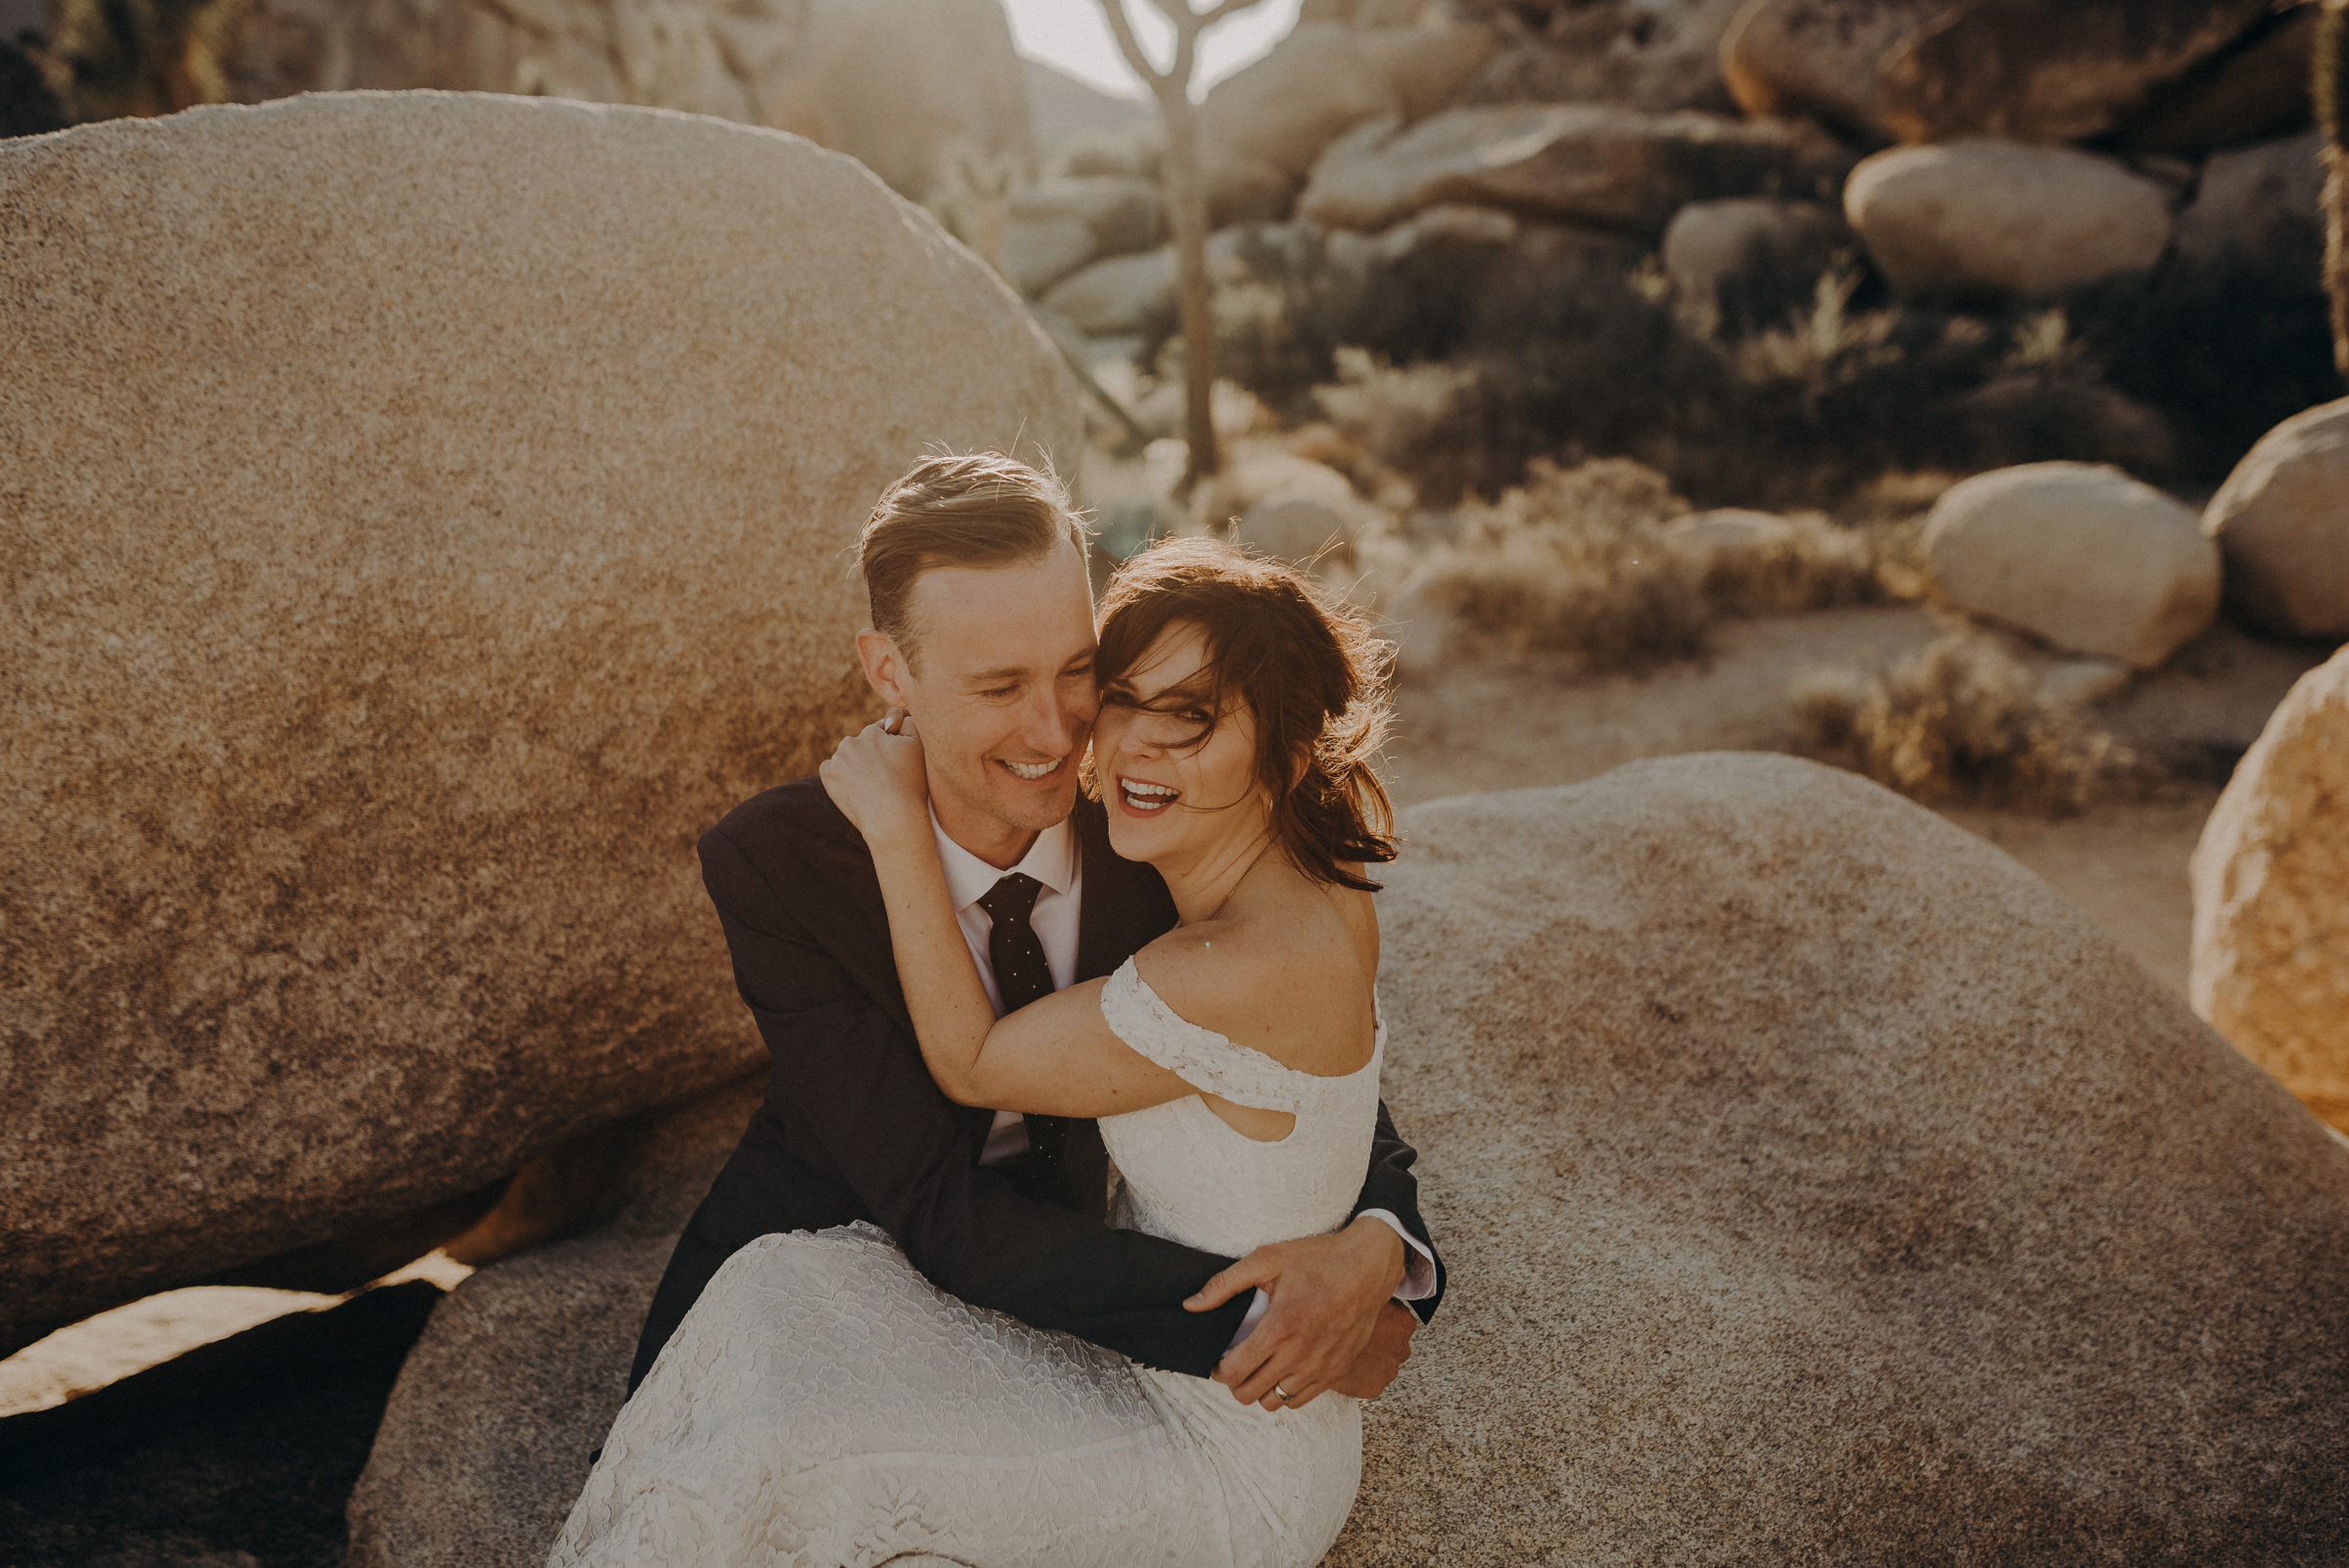 Joshua Tree Elopement - Los Angeles Wedding Photographers - IsaiahAndTaylor.com-078.jpg